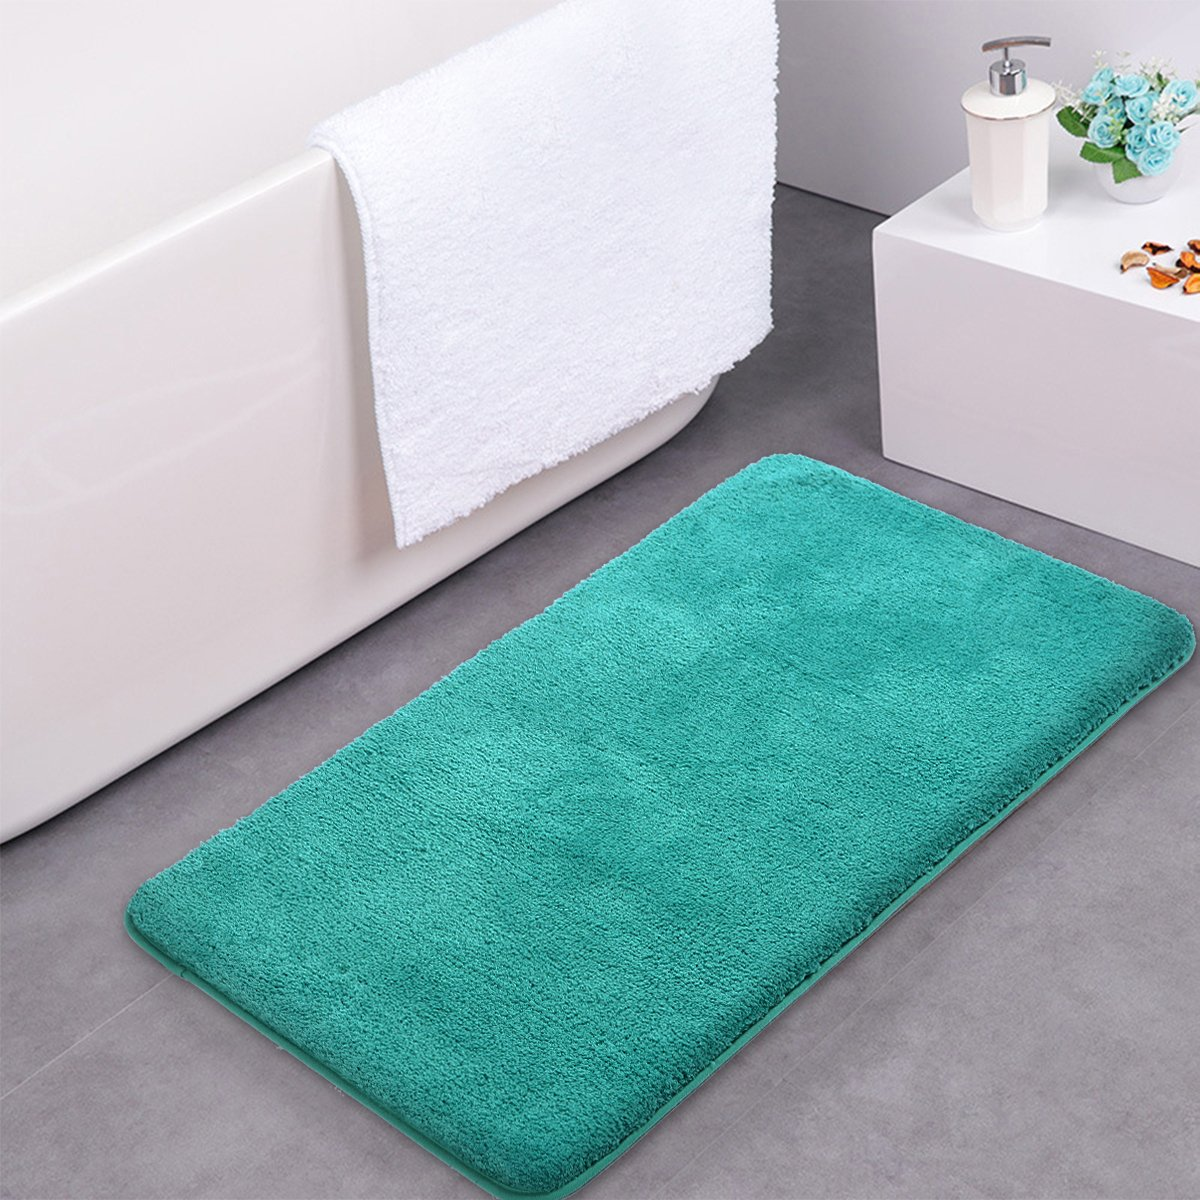 mayshine Bath Mat pedestal Toilet Bathroom Rug Non slip Machine washable Soft Microfiber - White 50x60U MS170307